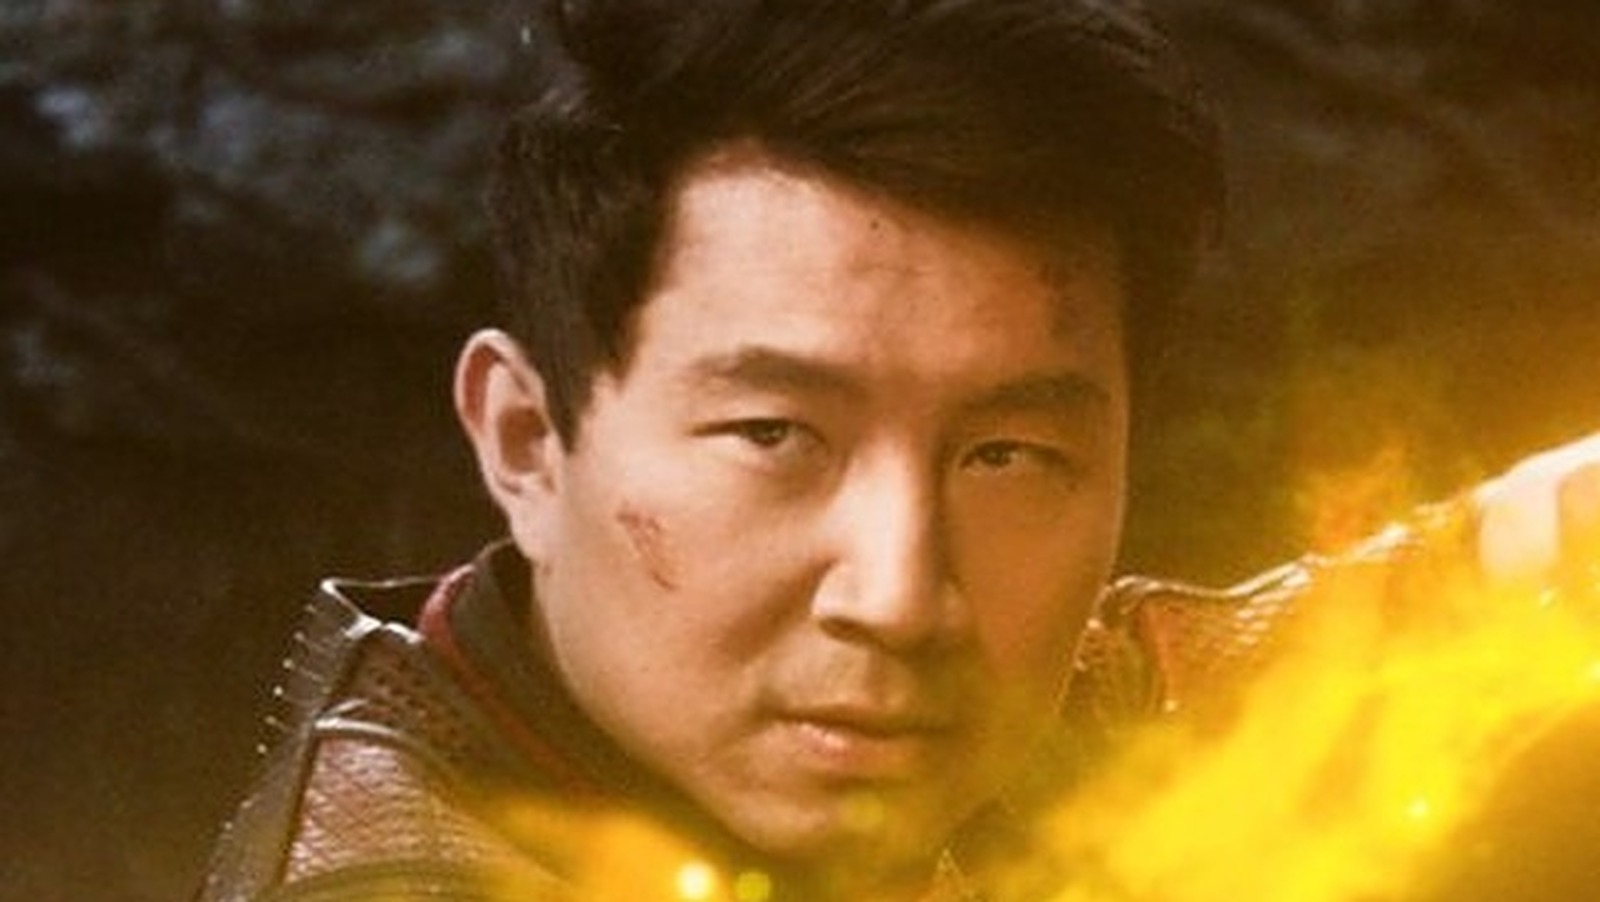 www.looper.com: Things You Never Knew About The Shang-Chi Movie